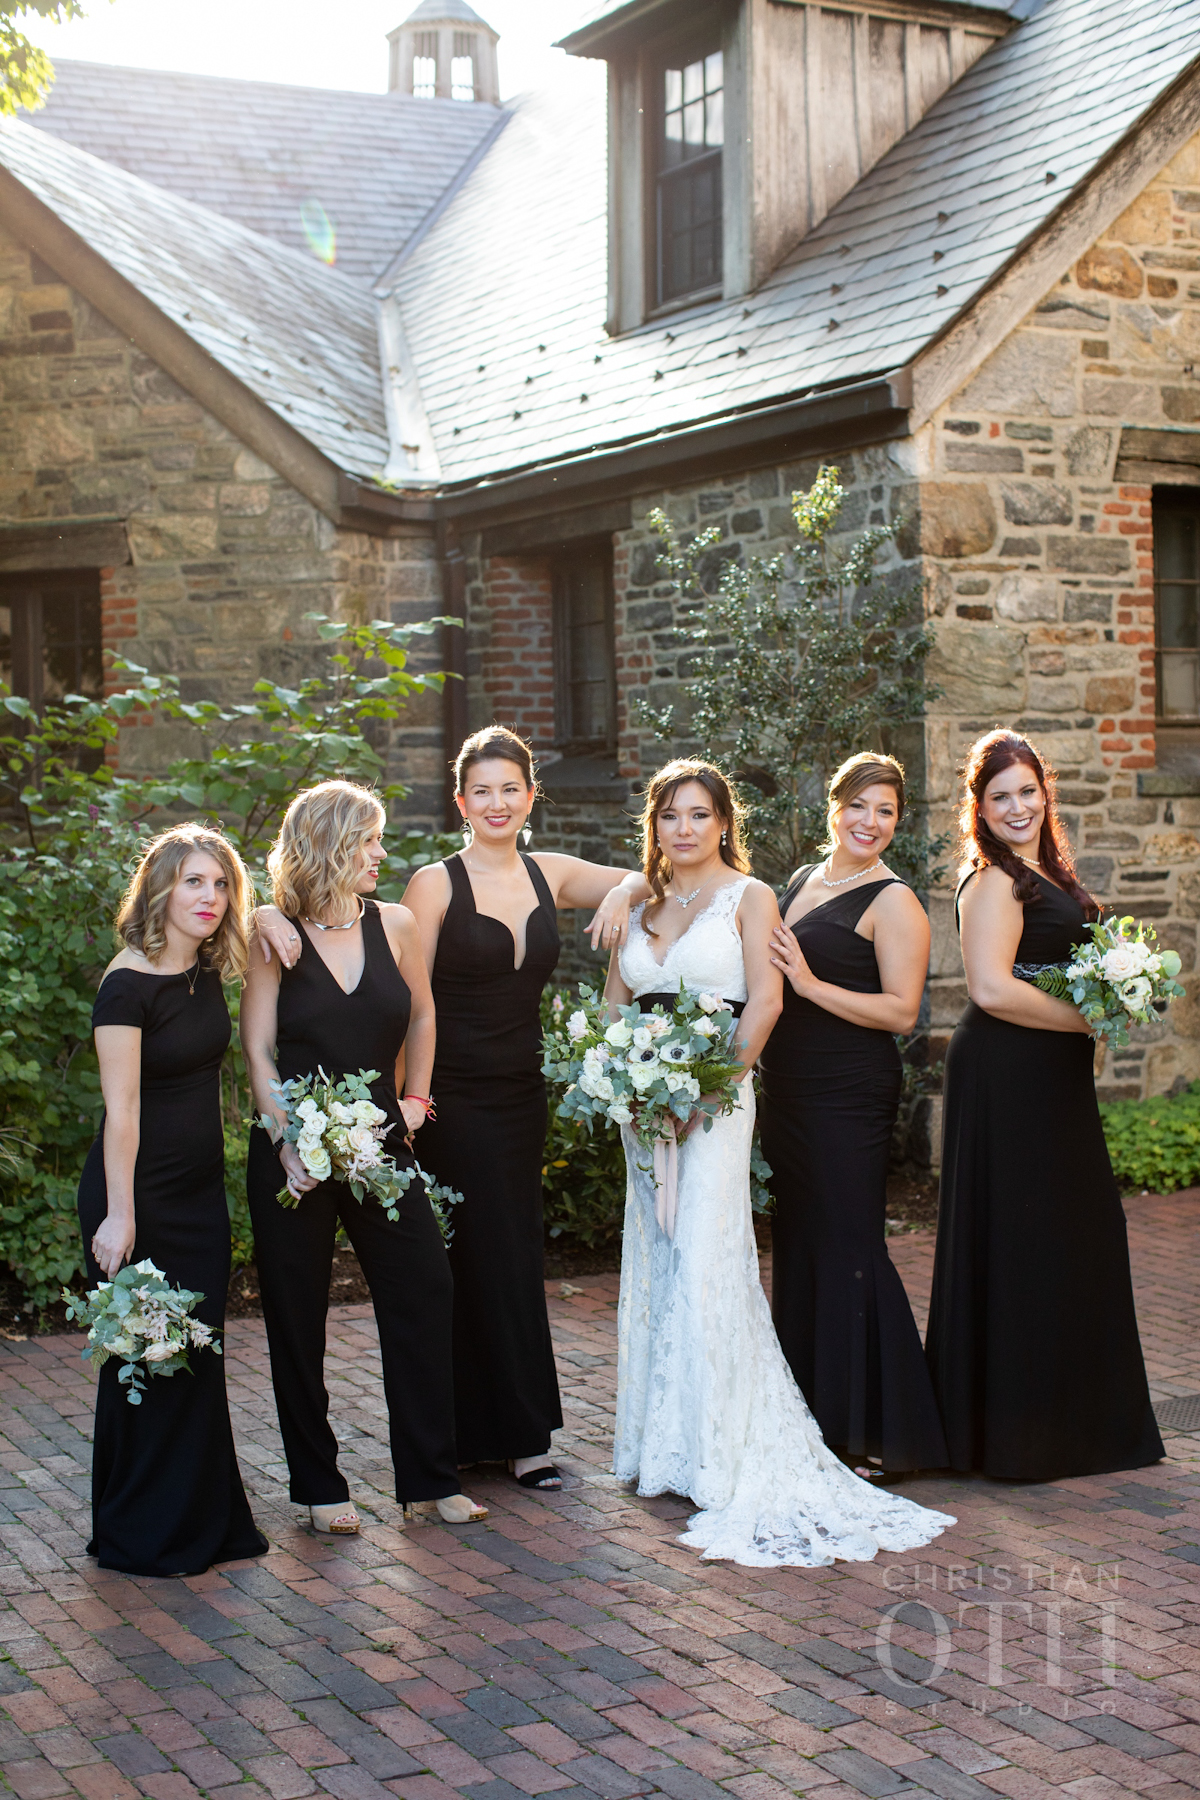 Bride and bridesmaids in black dresses at Blue Hill wedding